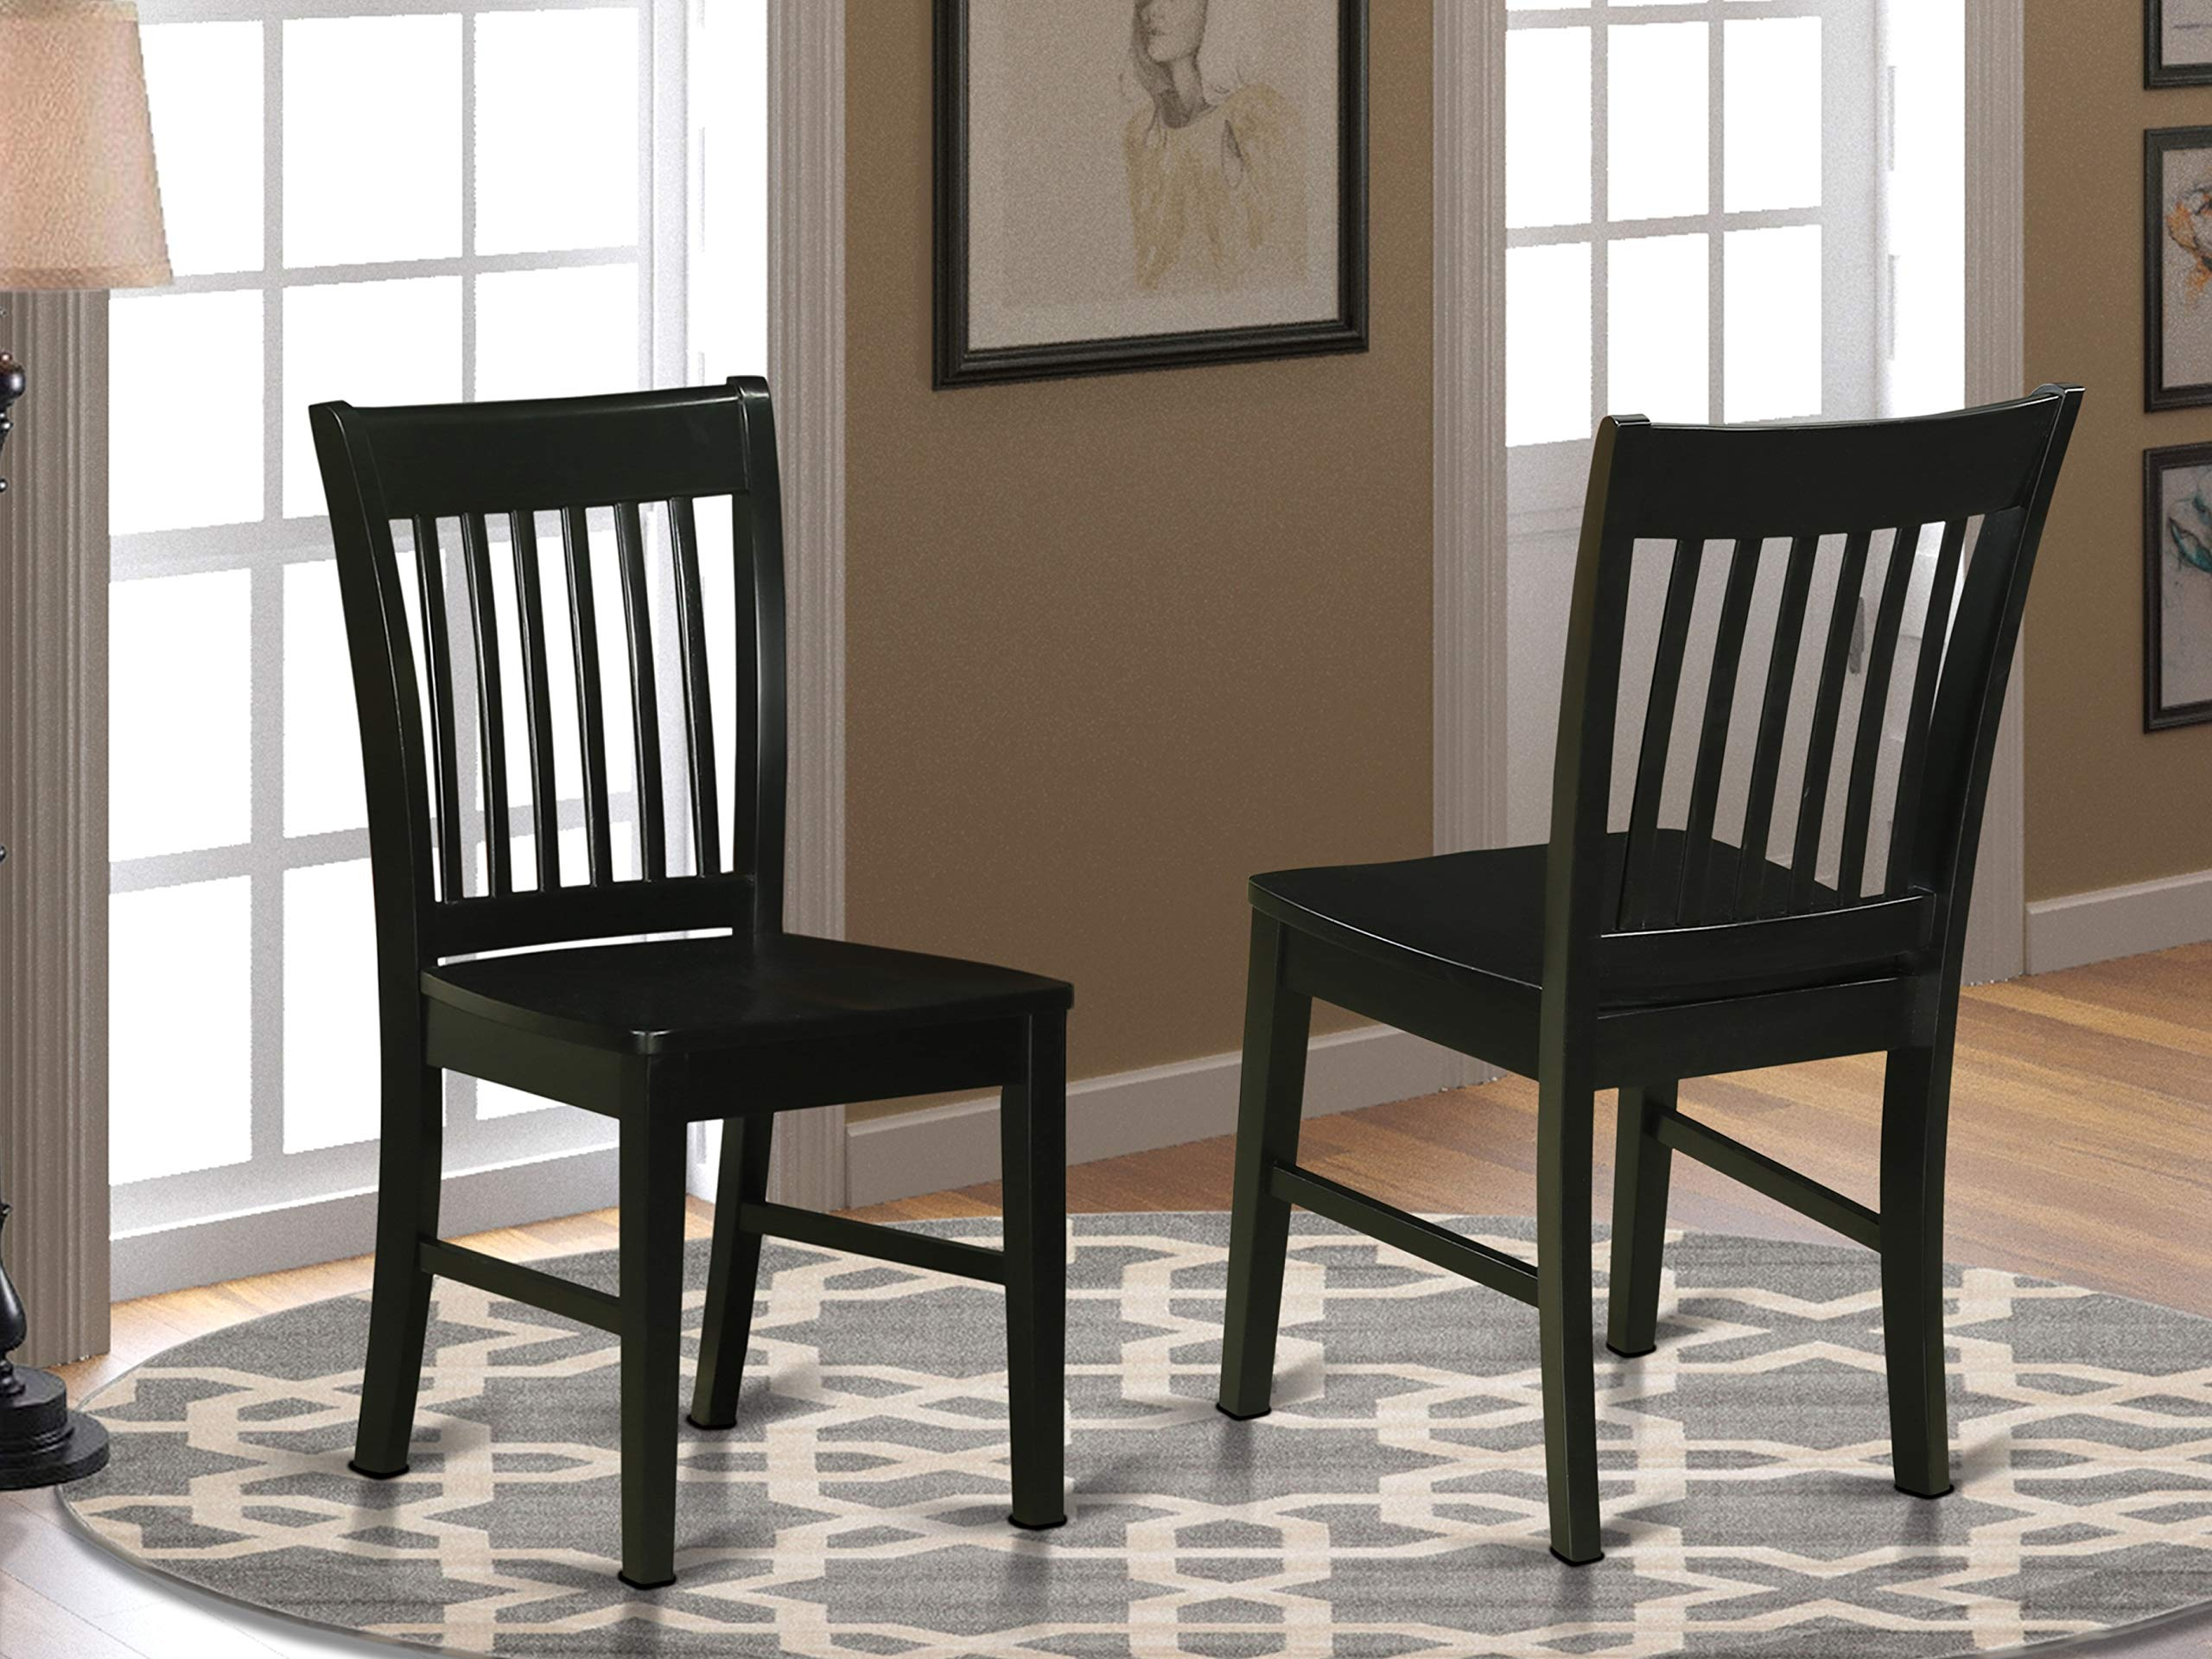 East West Furniture NFC-BLK-W Dining Chair Set with Wood Seat, Black Finish, Set of 2 by East West Furniture